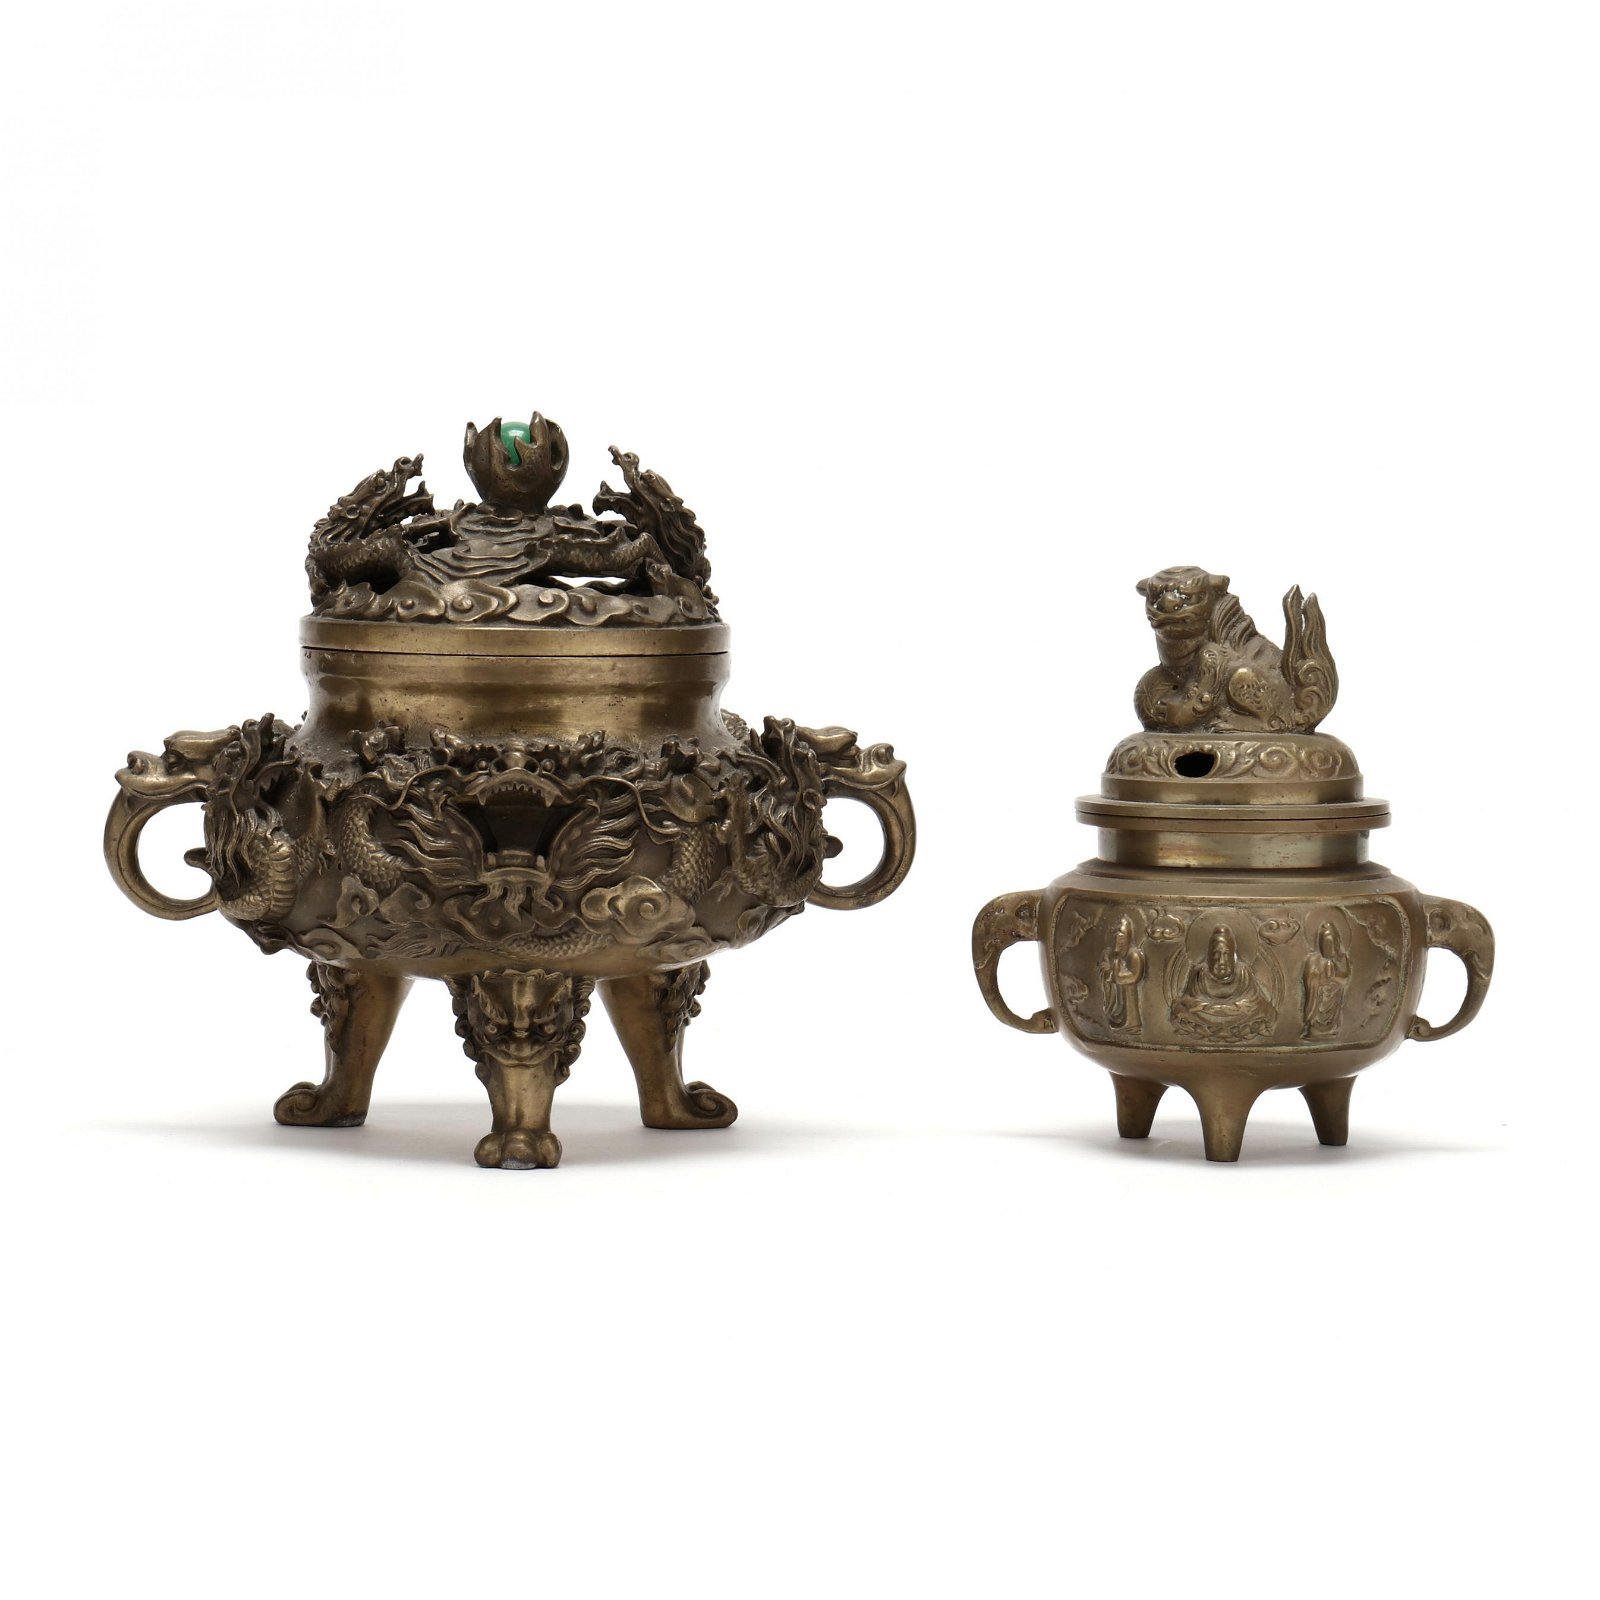 Two Chinese Censers with Covers